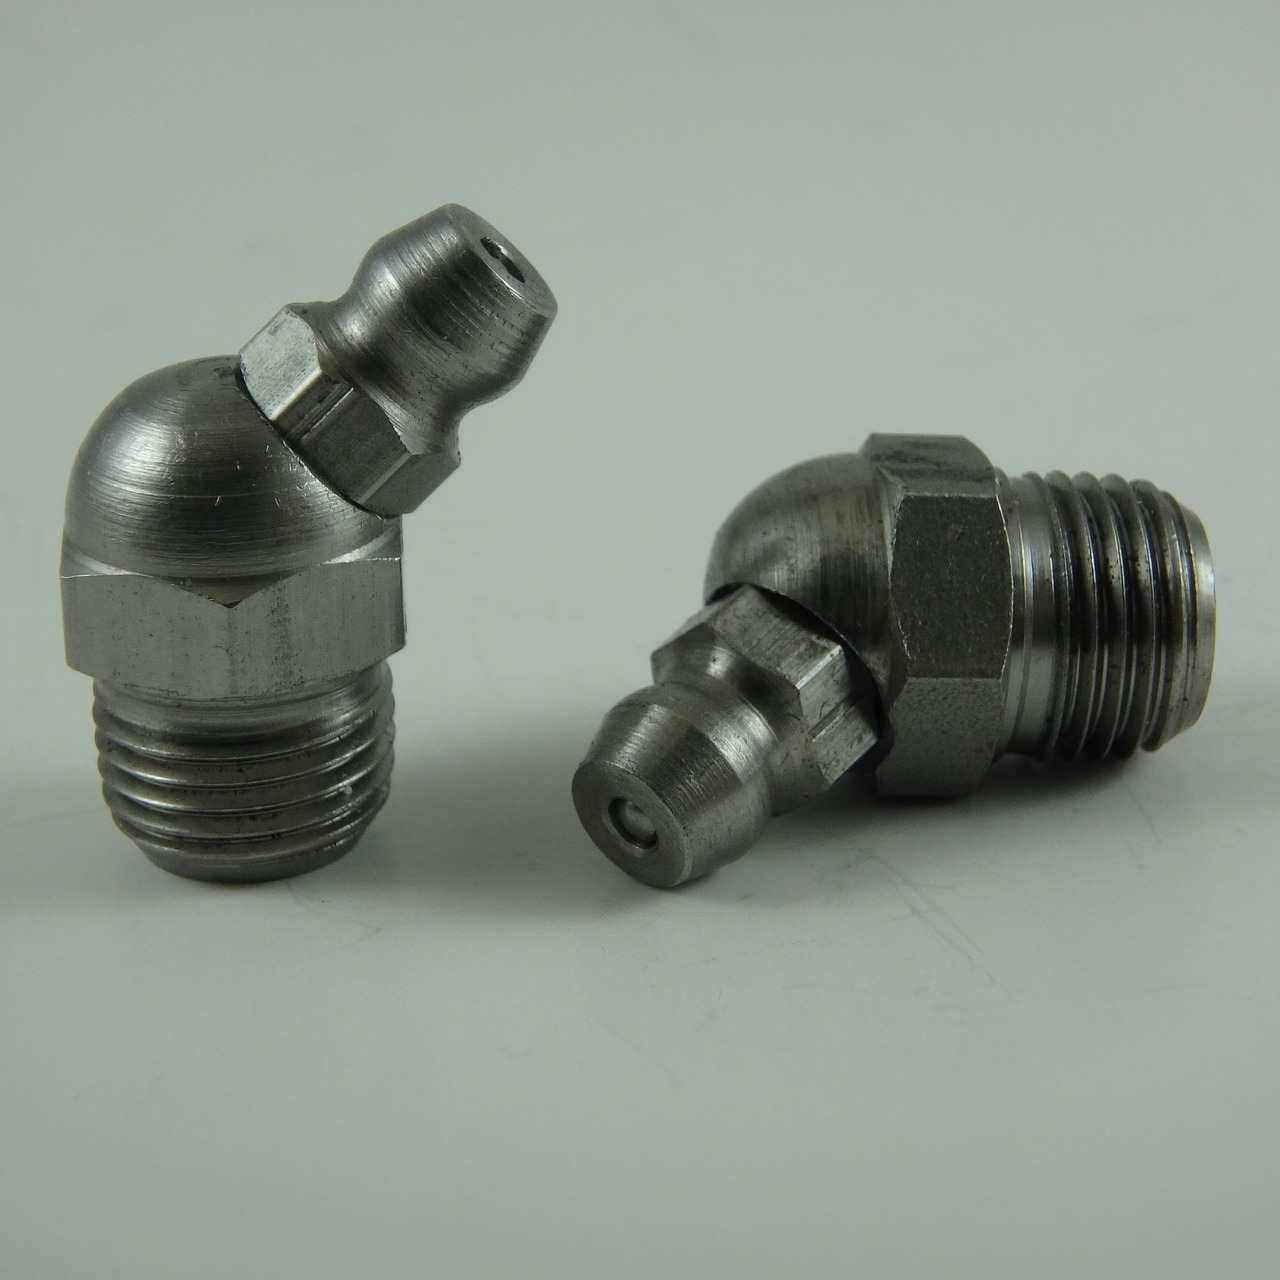 1/8-27 Stainless Steel 45 Degree Grease Fitting